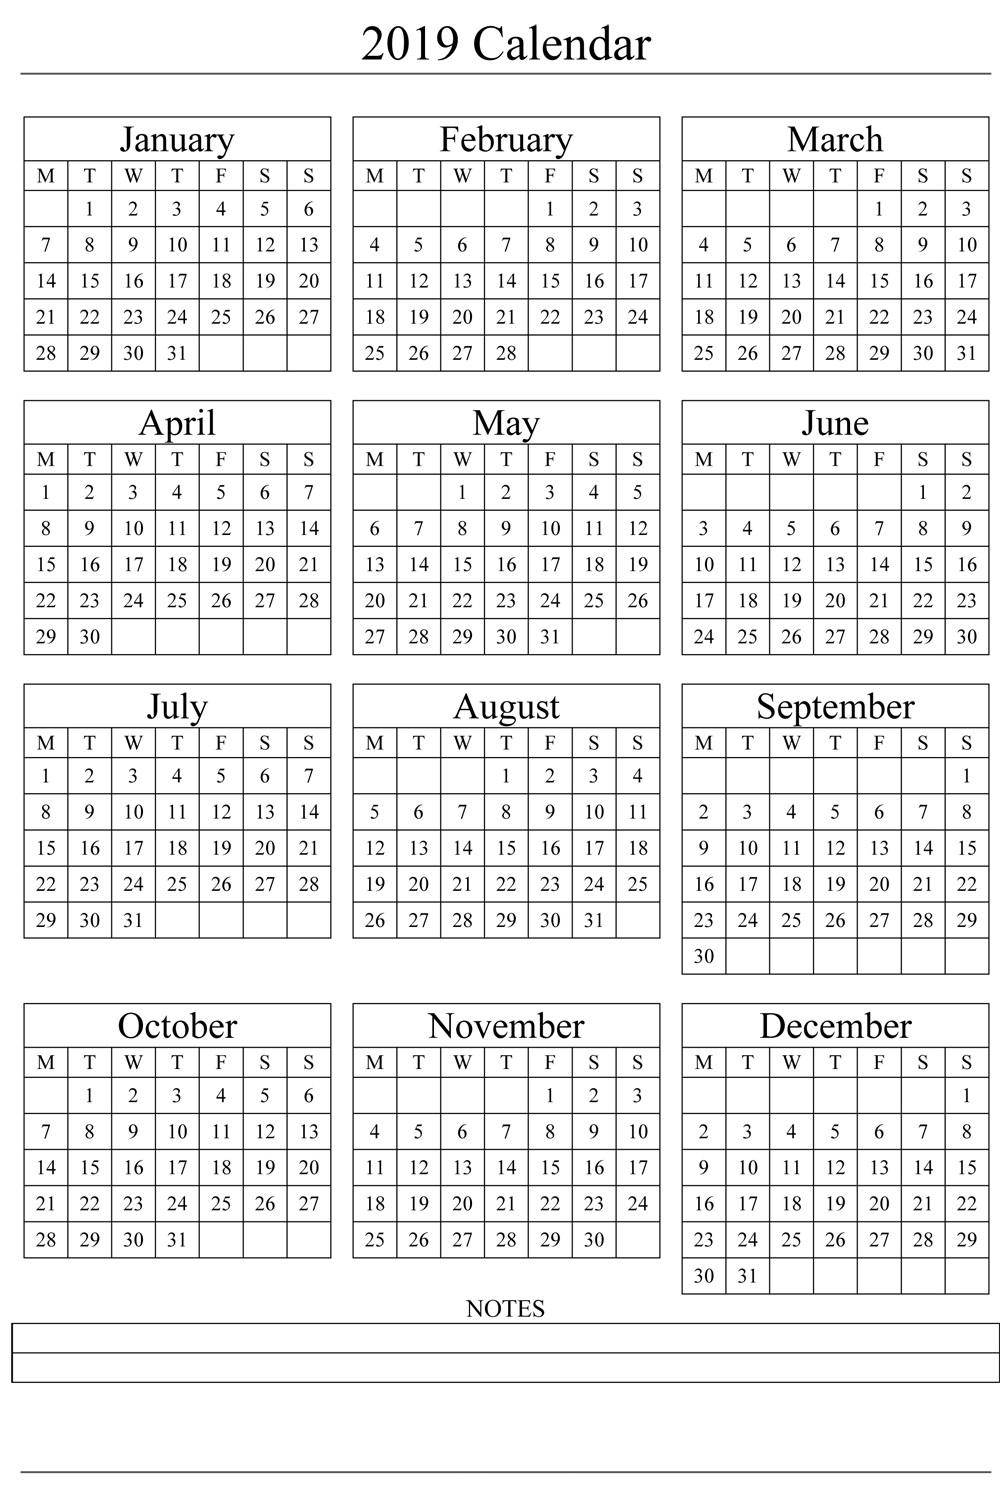 2019 Year Calendar To Print With Free Yearly Printable PDF Excel Word Public